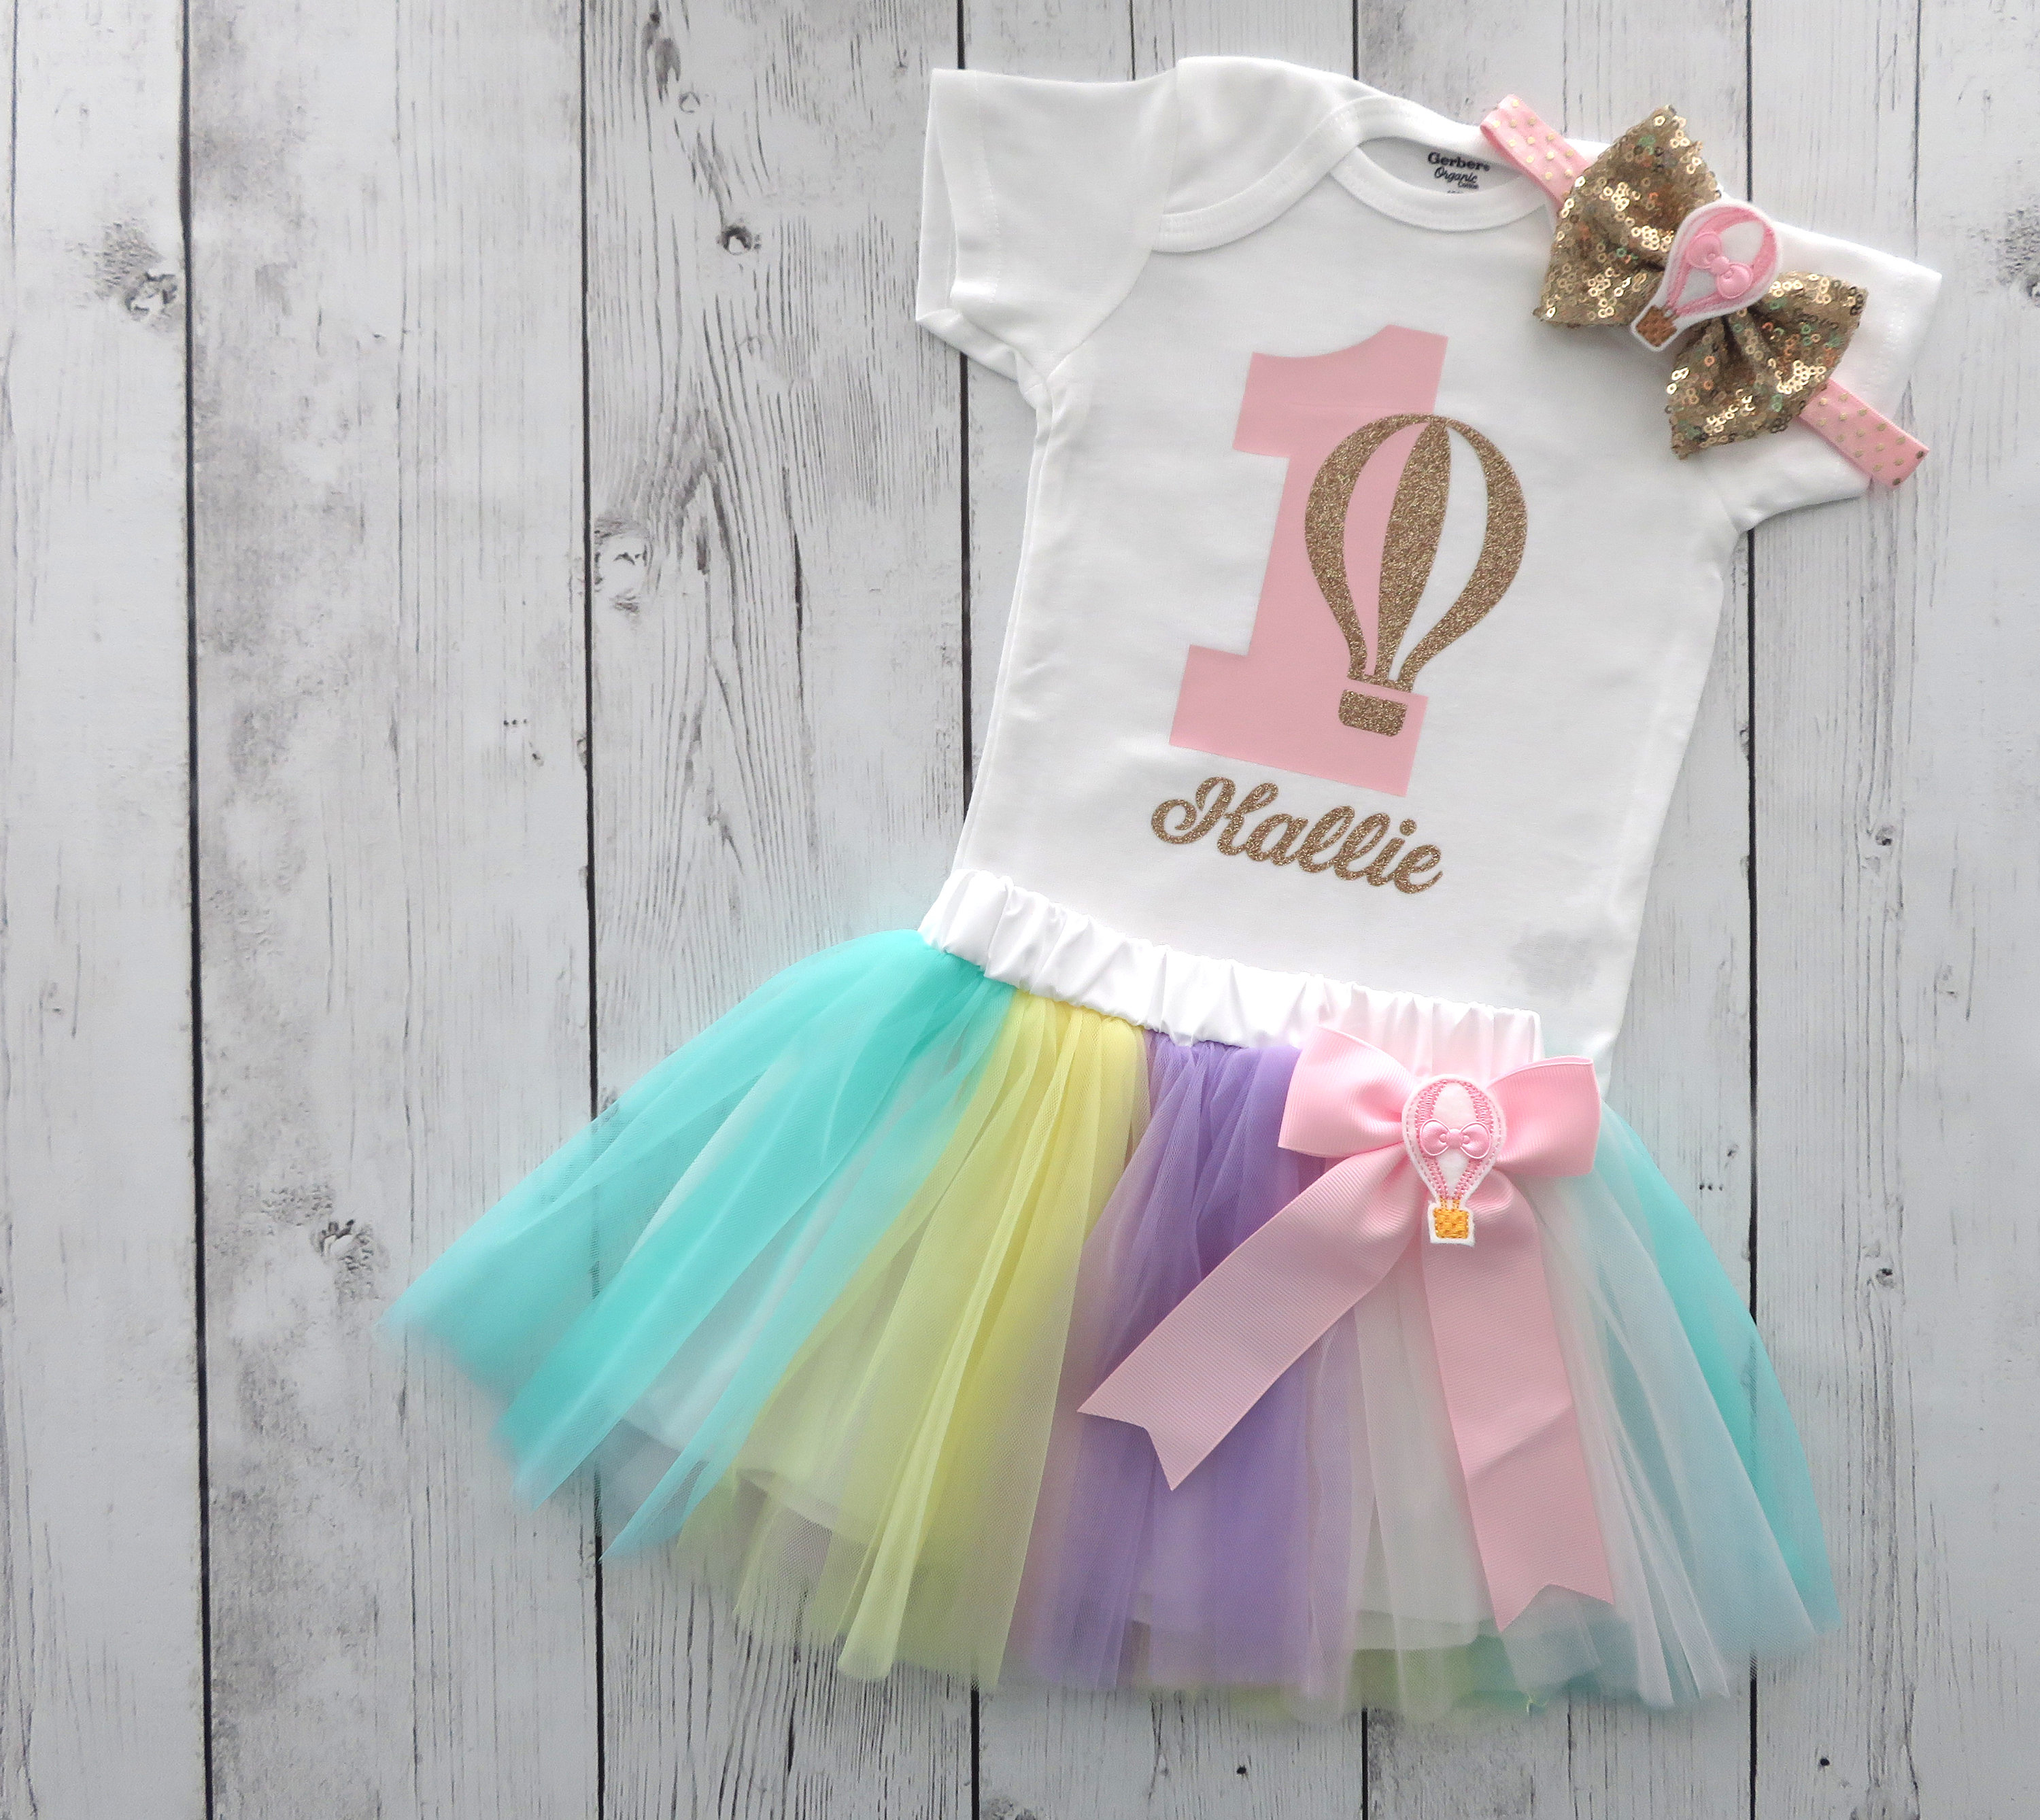 Hot Air Balloon First Birthday Outfit with tutu skirt - first birthday outfit girl, cake smash, pink gold, hot air balloon birthday outfit